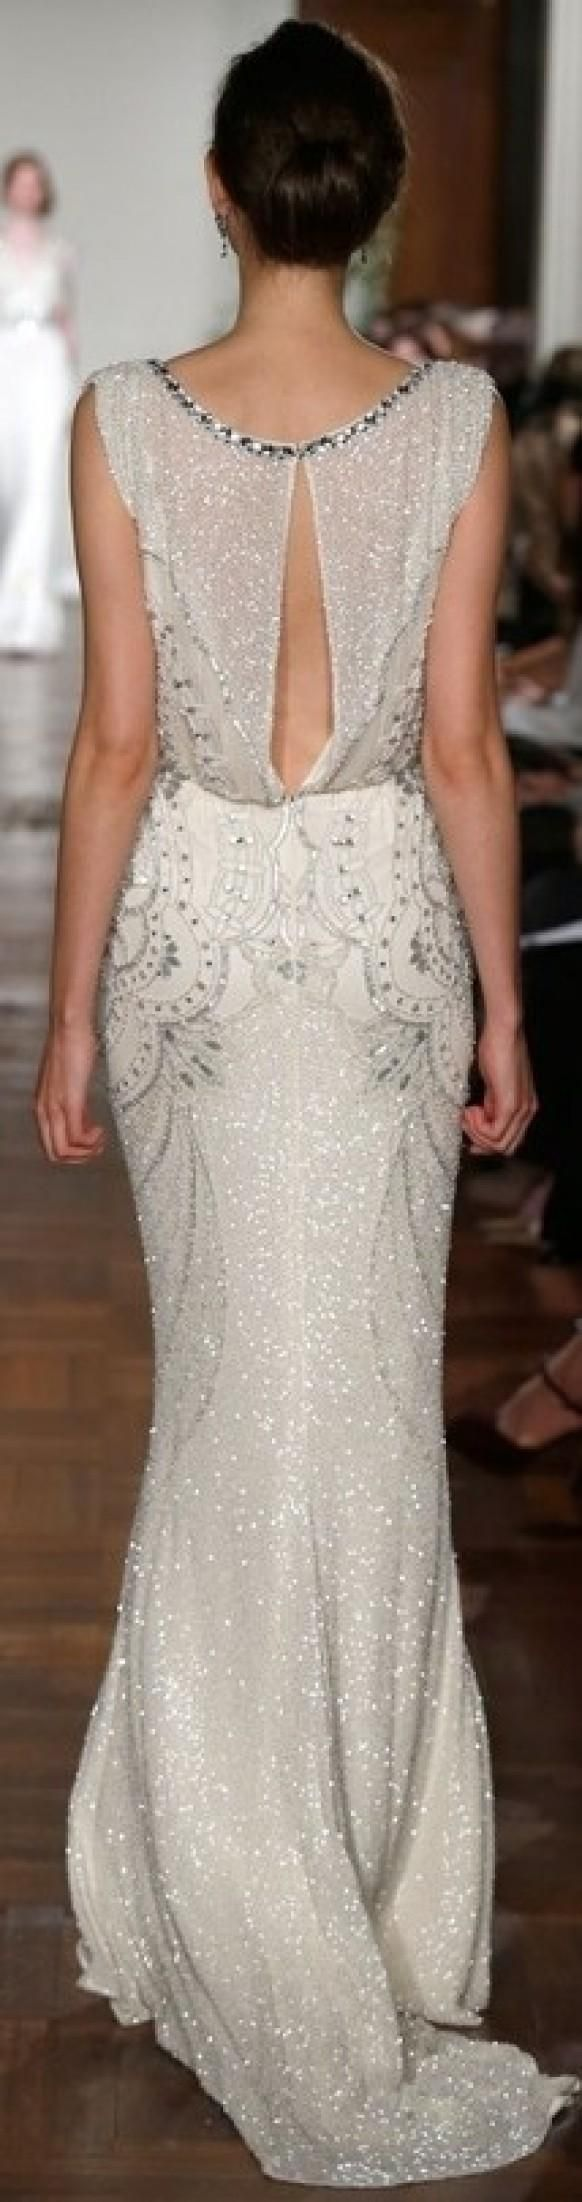 Vintage yet modern wedding dress with beading and deco vibe